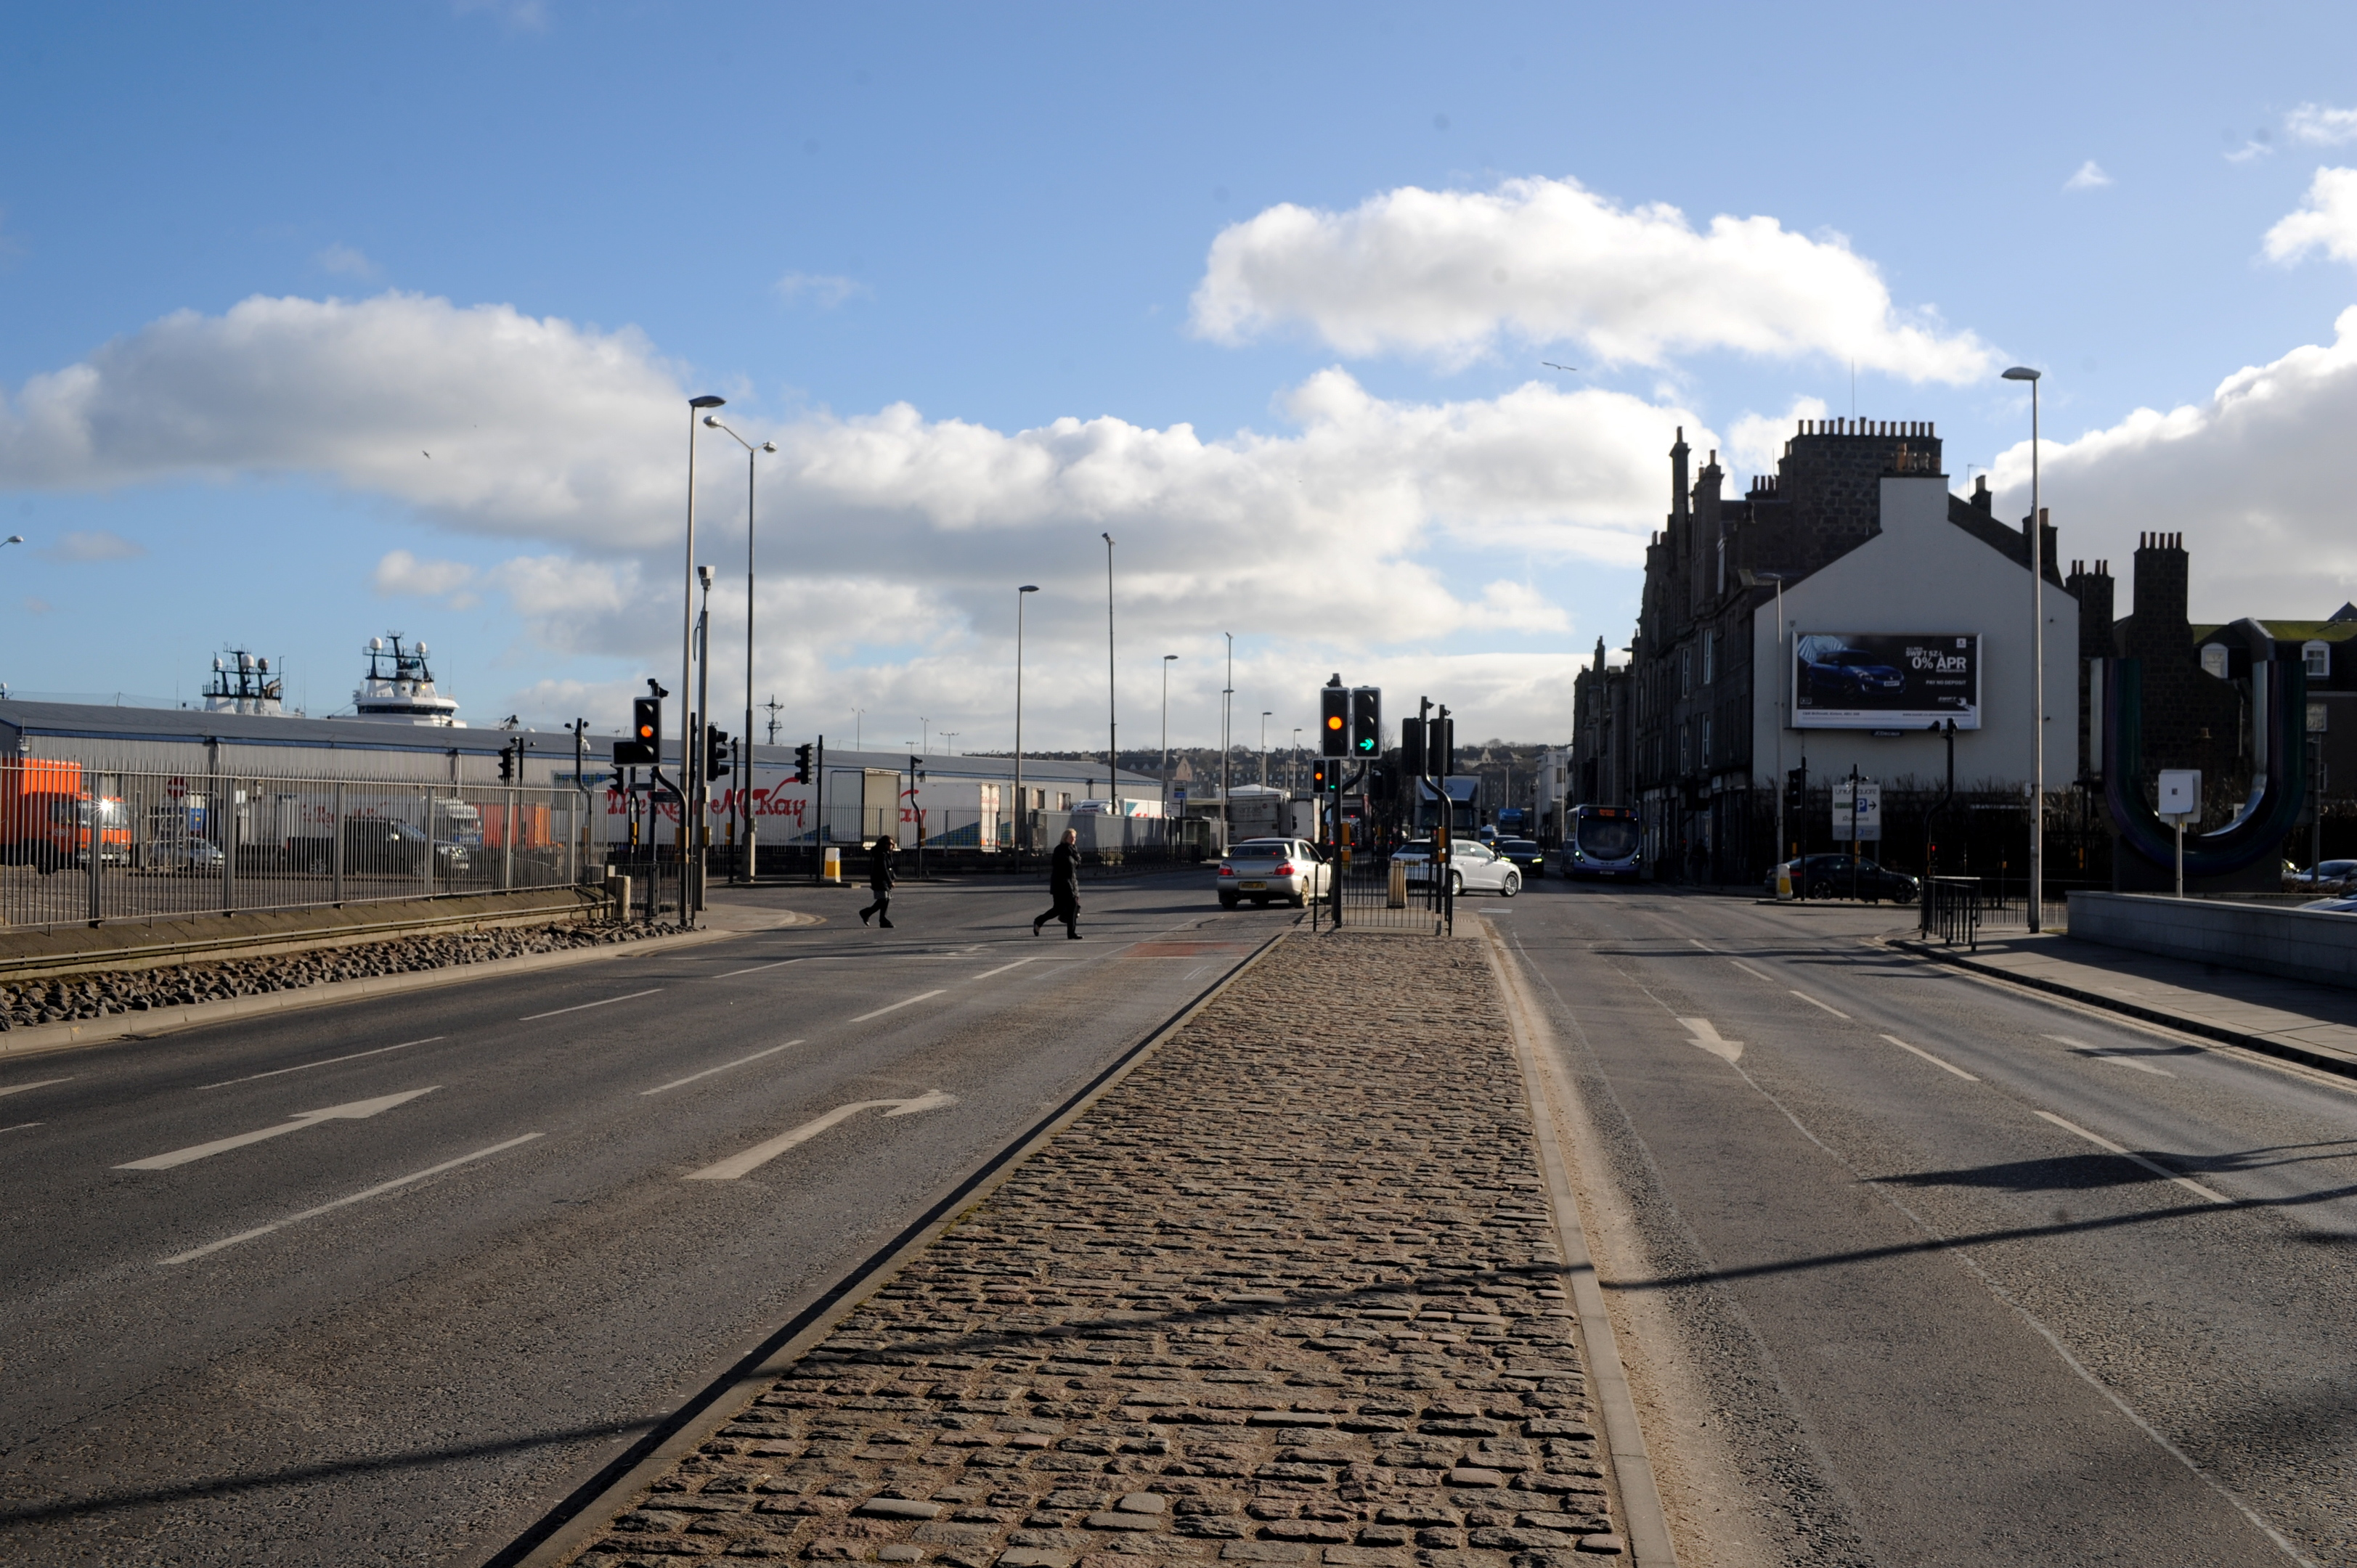 An extra lane could be added to the Torry-bound side of Market Street, allowing two right-turn lanes. That would lead to the city-bound side being widened, taking out part of the Union Square car park.